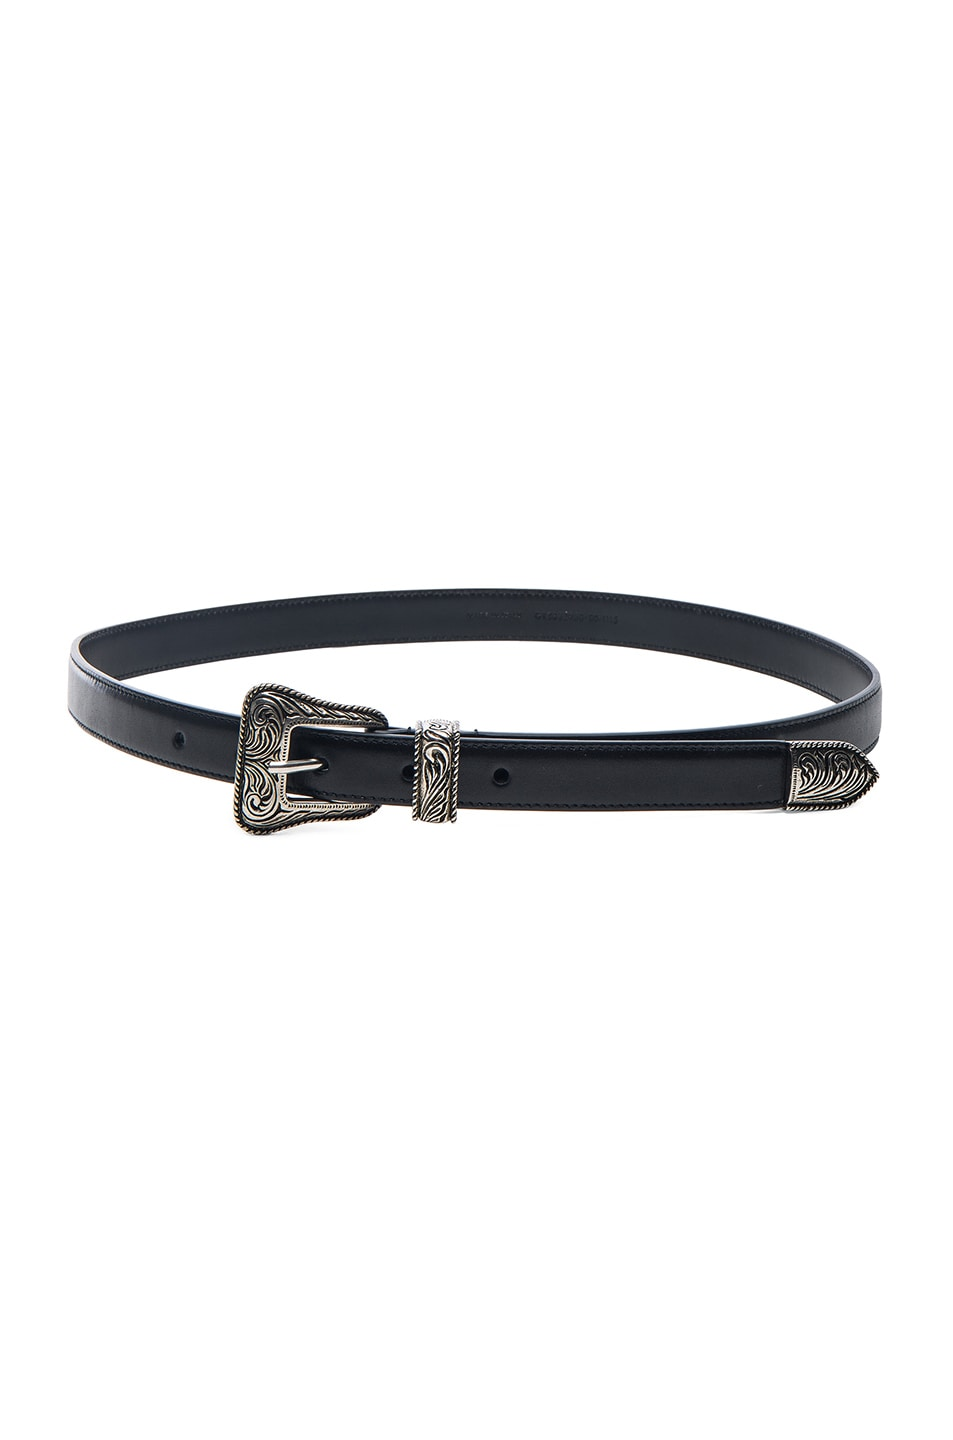 Image 1 of Saint Laurent Western Belt in Black